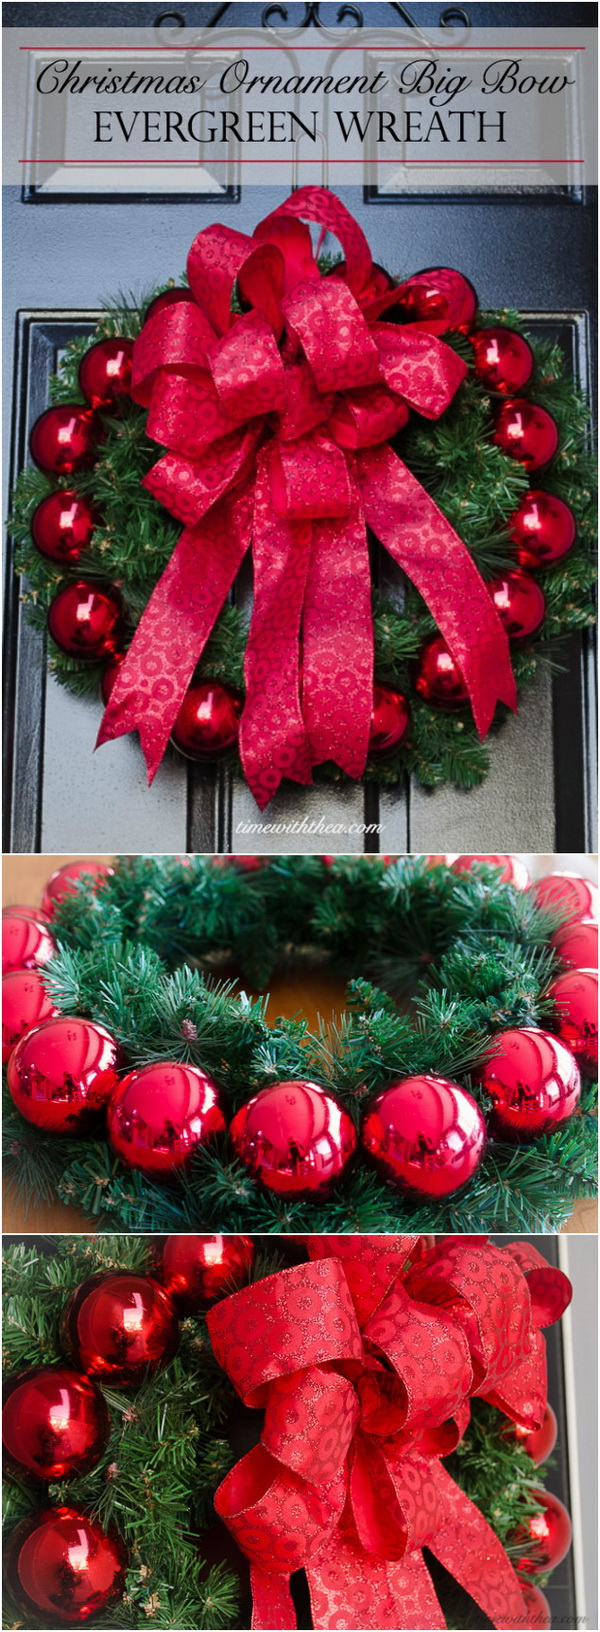 Evergreen Christmas Ornament Wreath with Big Bow.